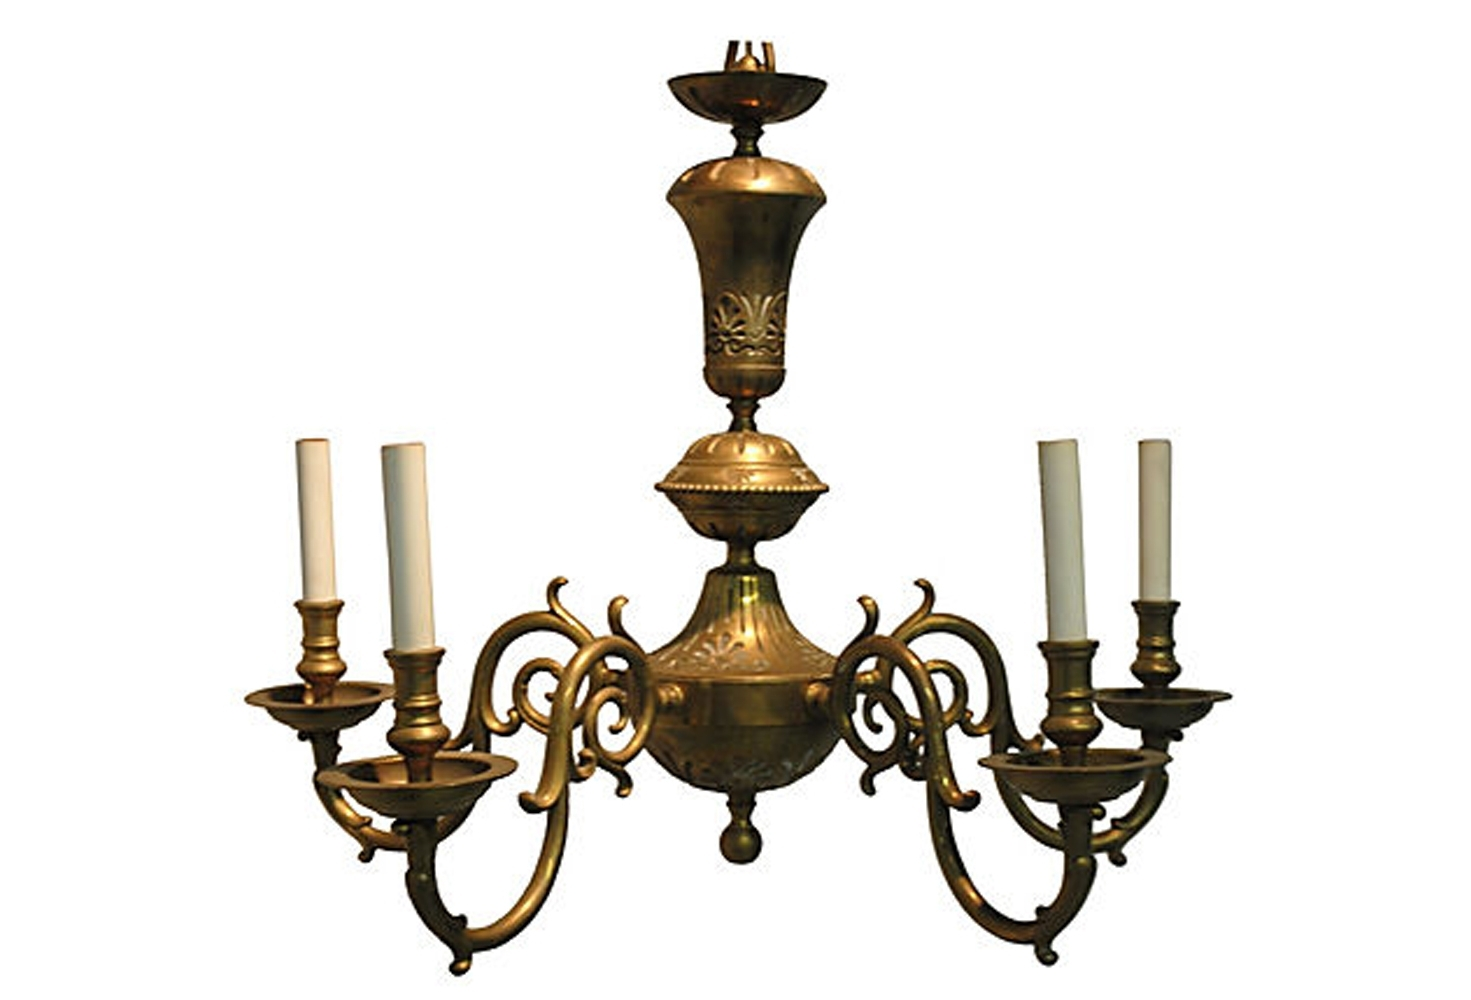 Home Design : Extraordinary Antique Brass Chandeliers Chandelier With Preferred Old Brass Chandeliers (View 5 of 15)